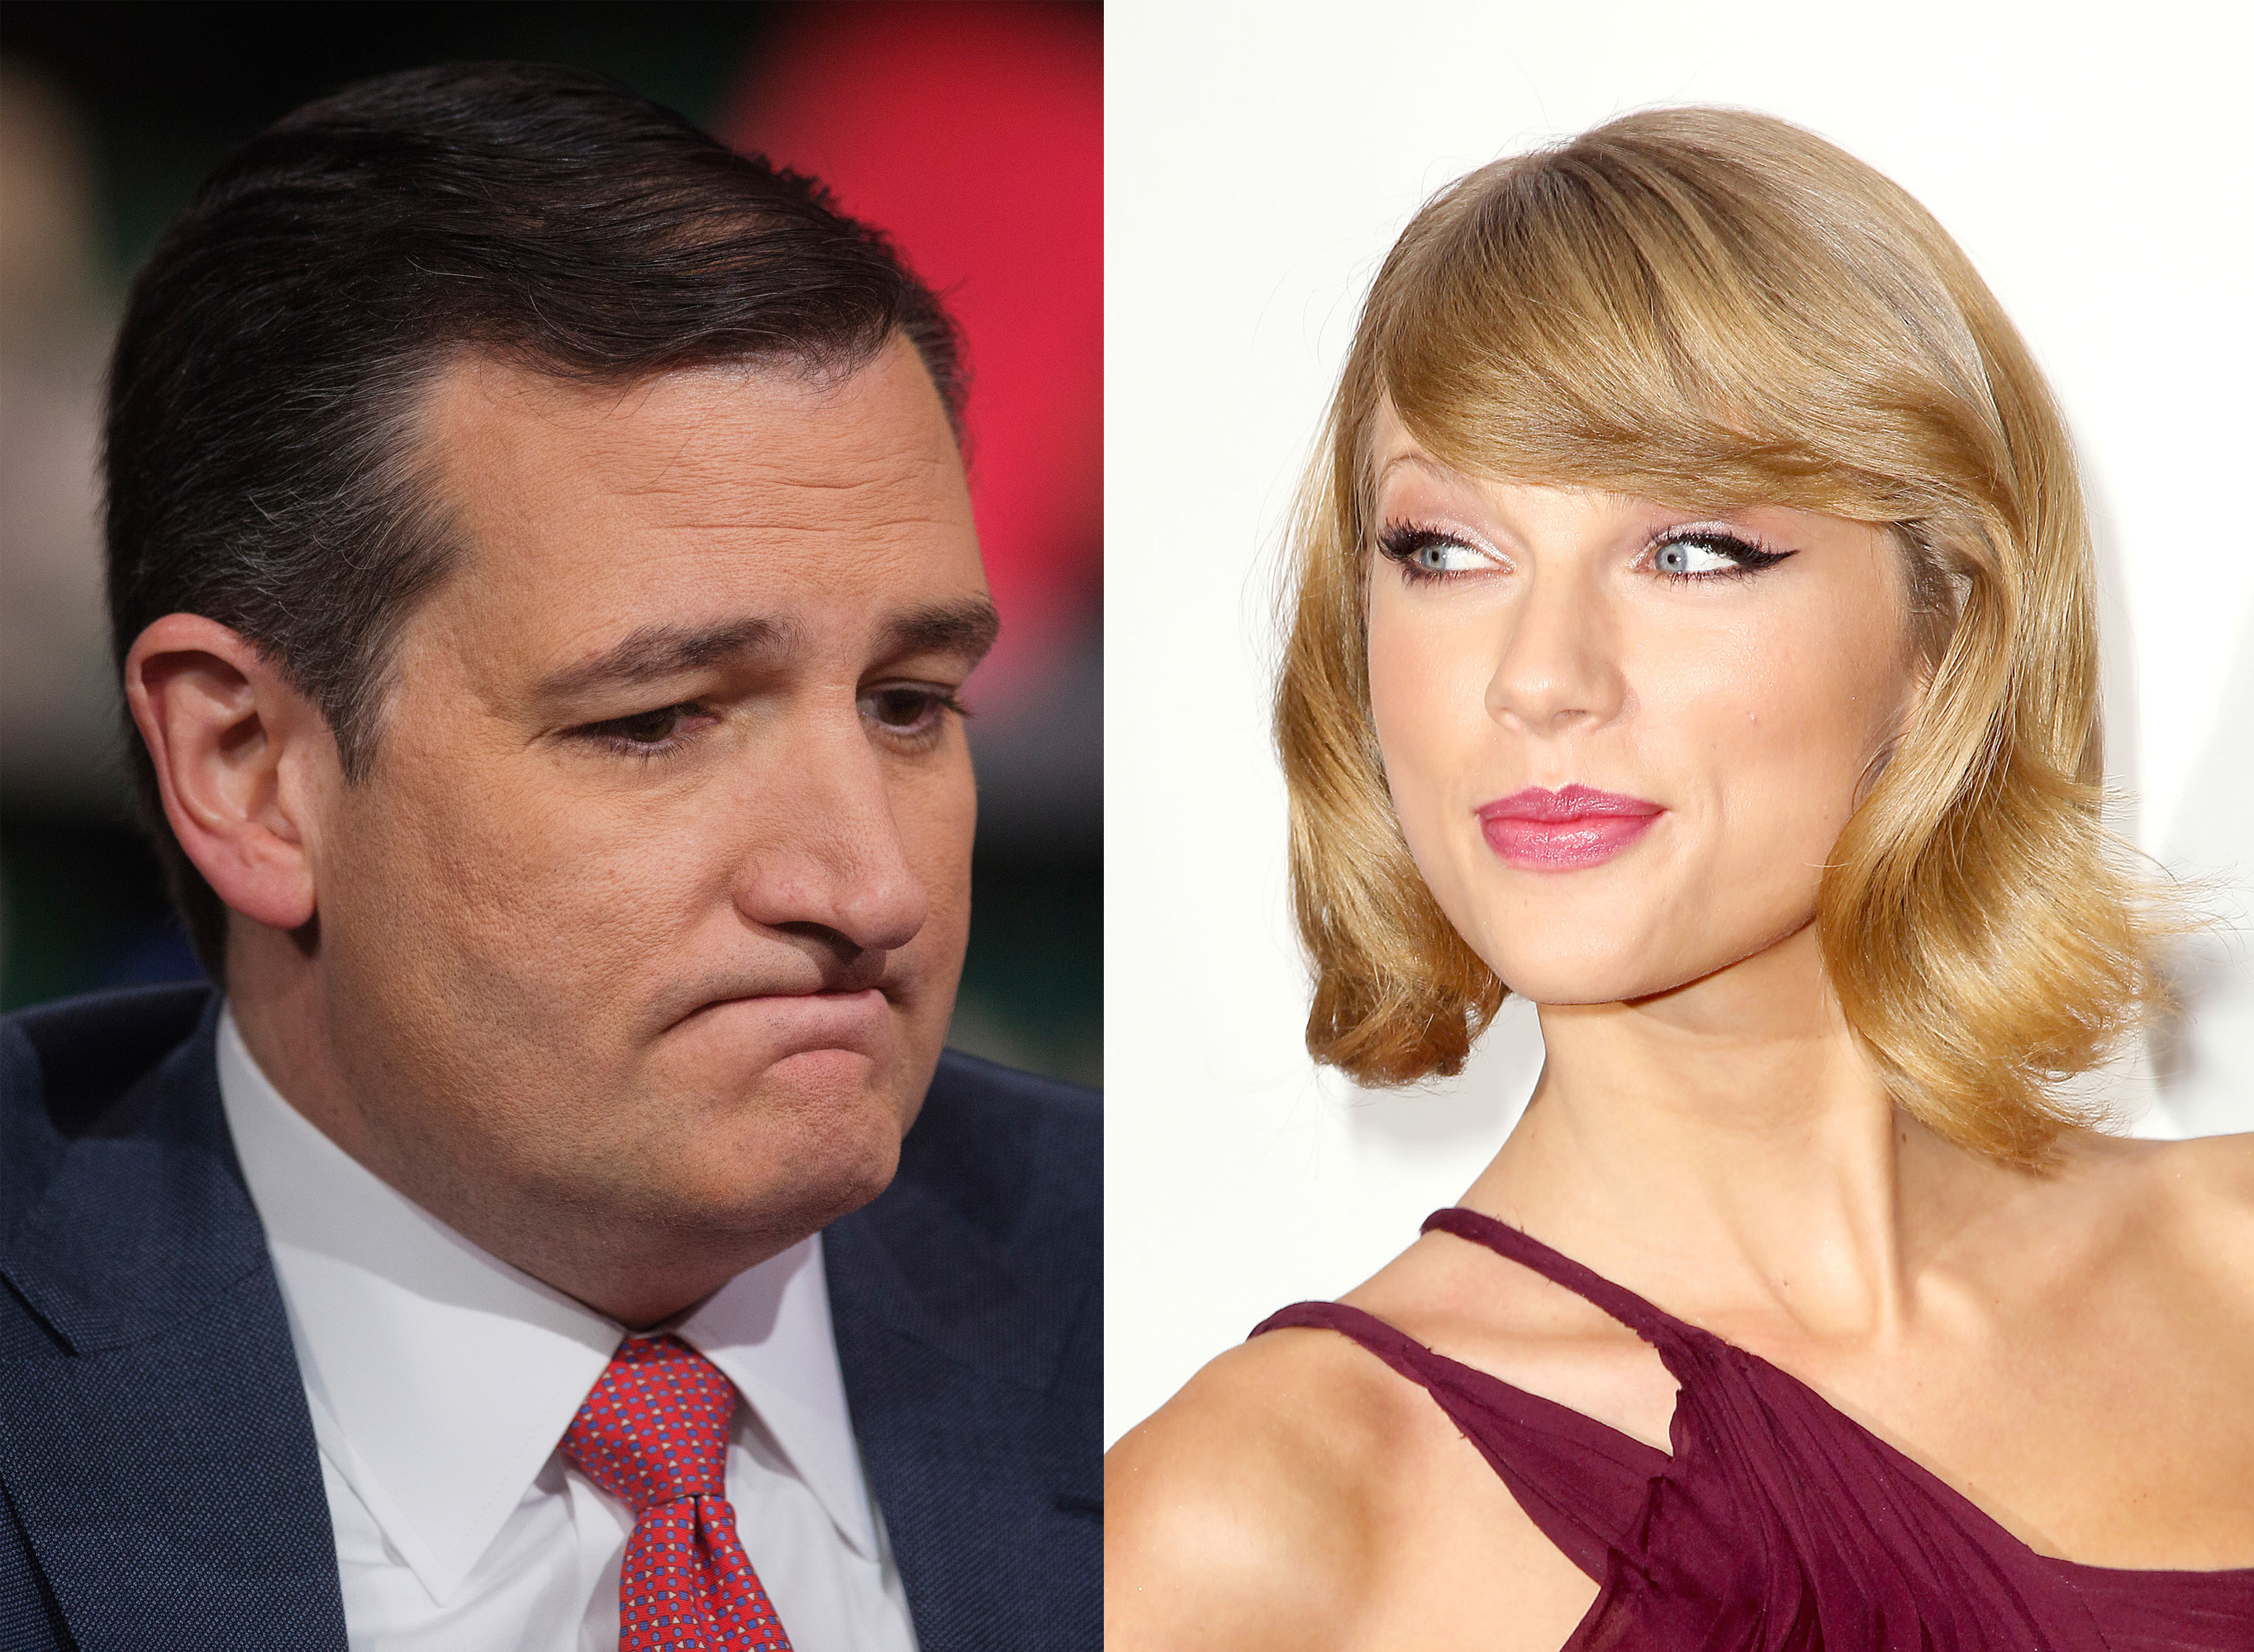 Left: Ted Cruz; right: Taylor Swift